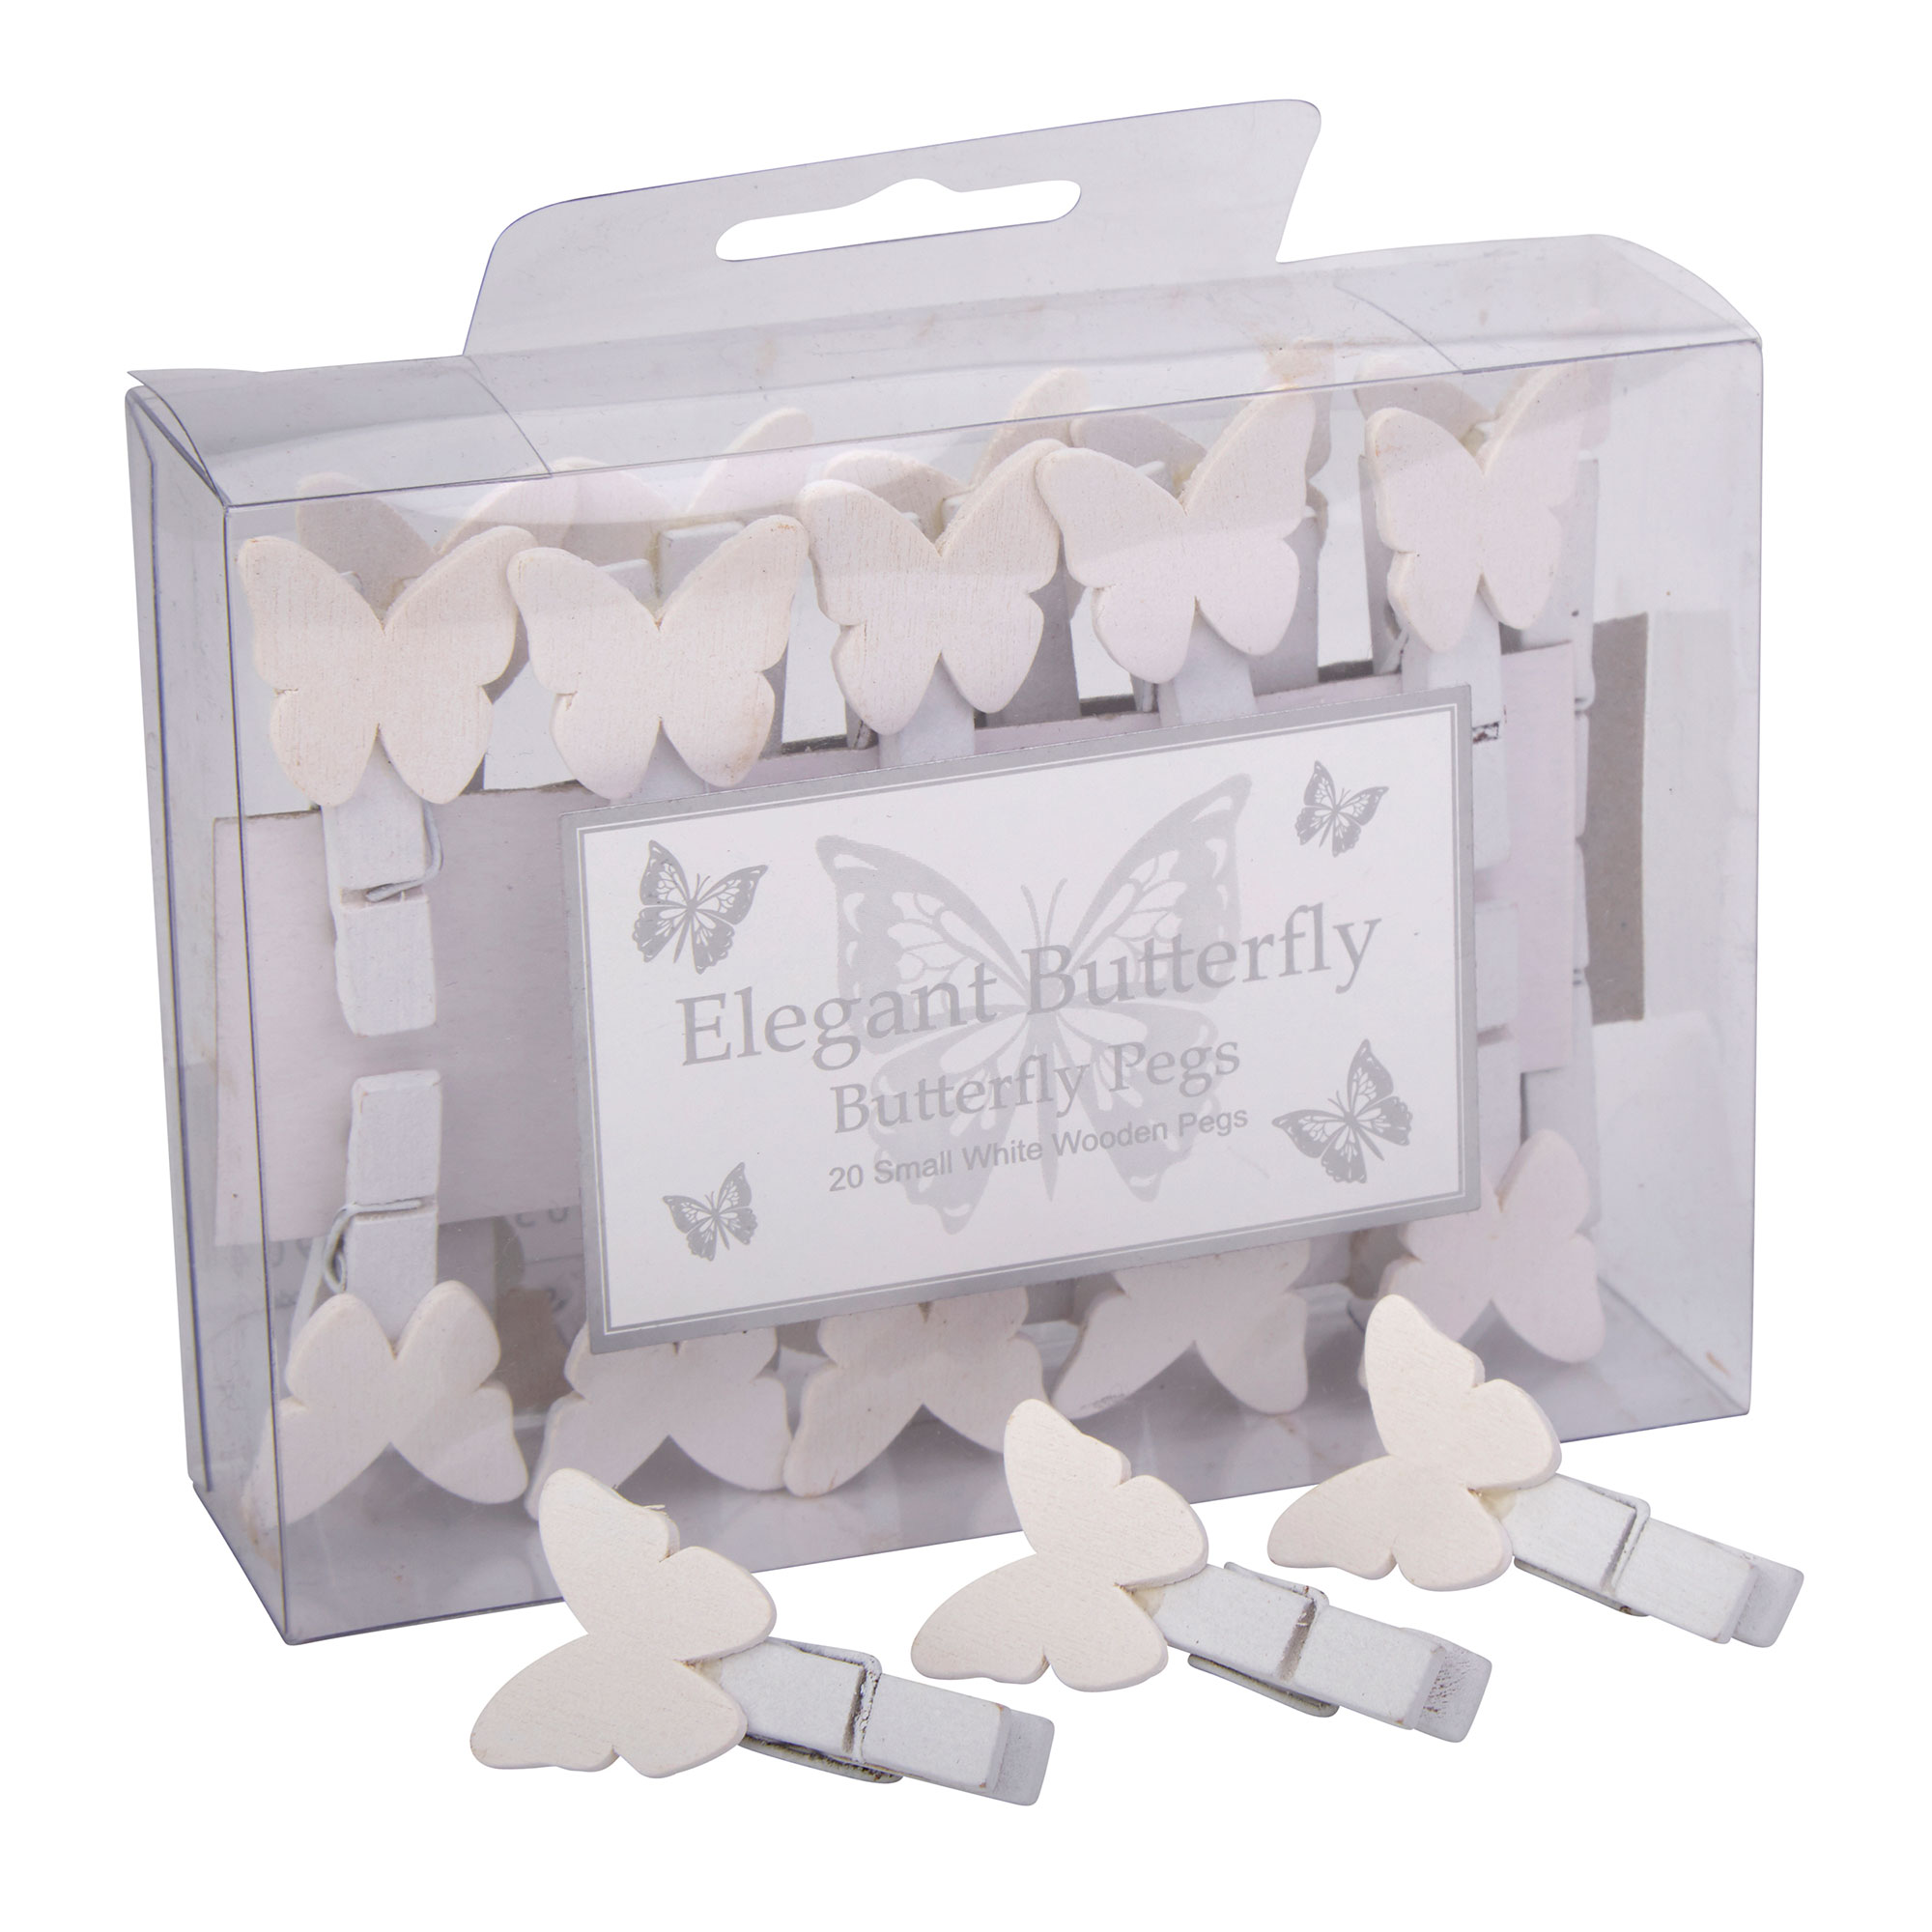 White Butterfly Pegs - 20 Pack